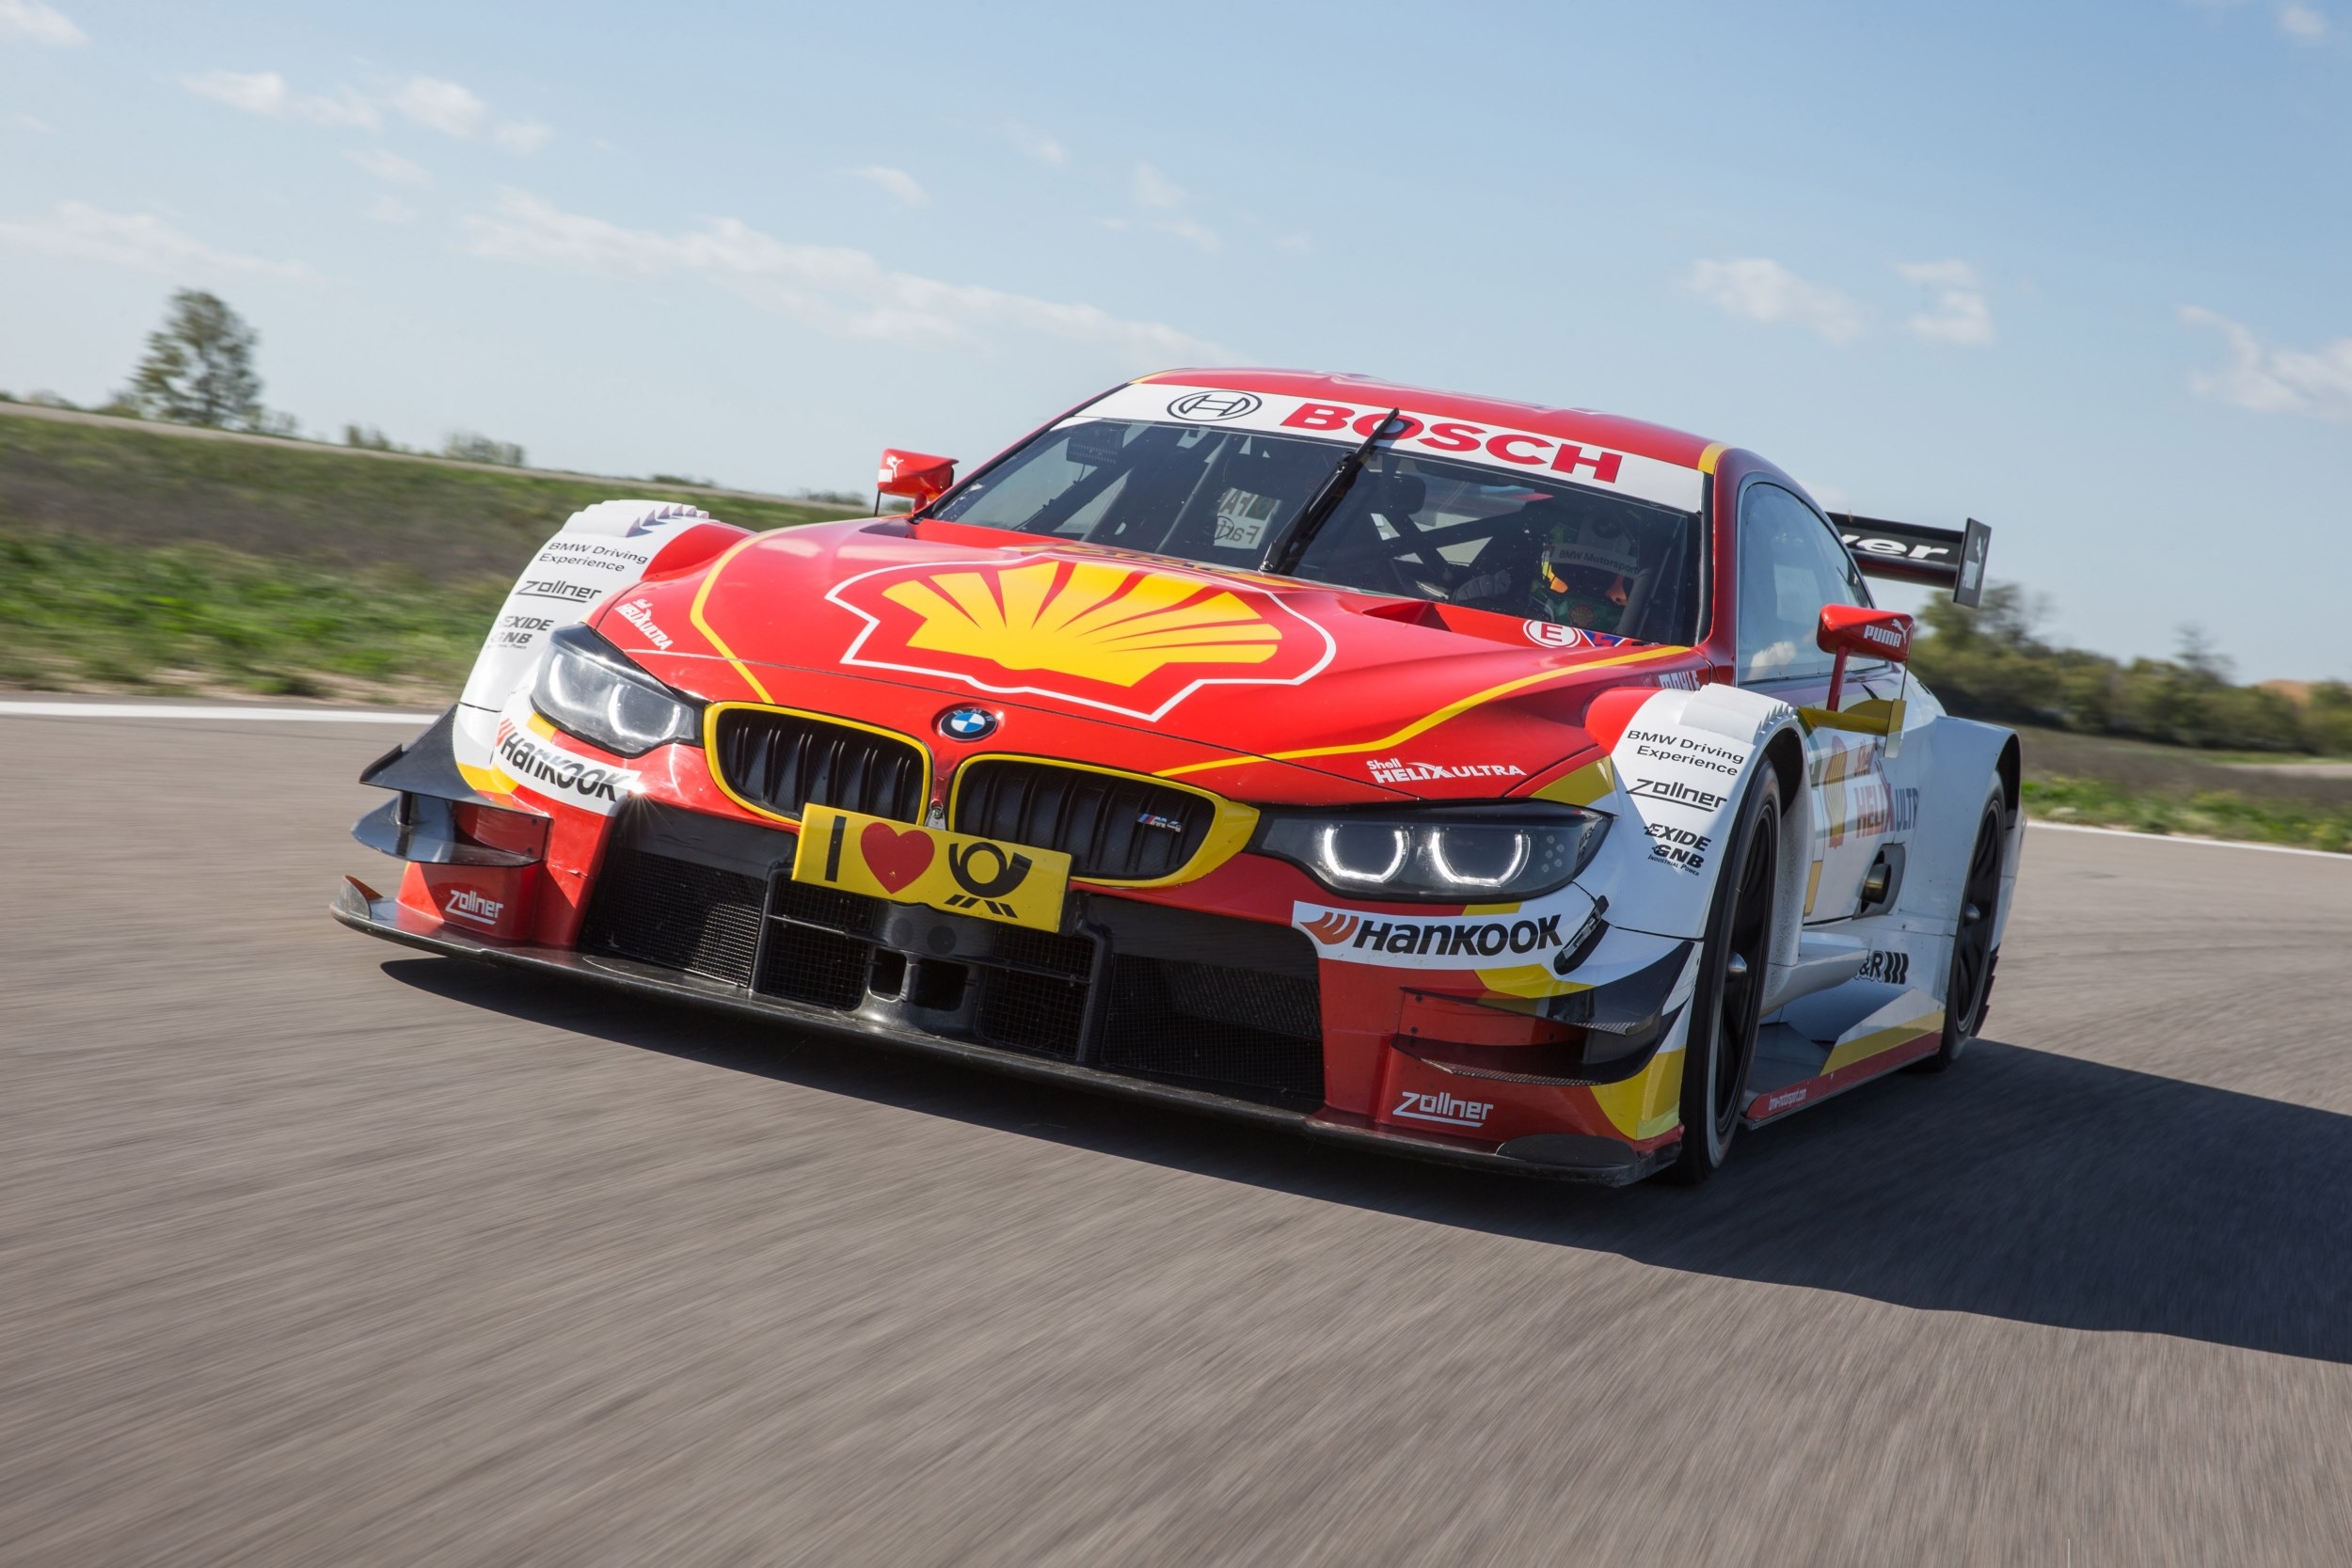 Shell e BMW intensificano la collaborazione